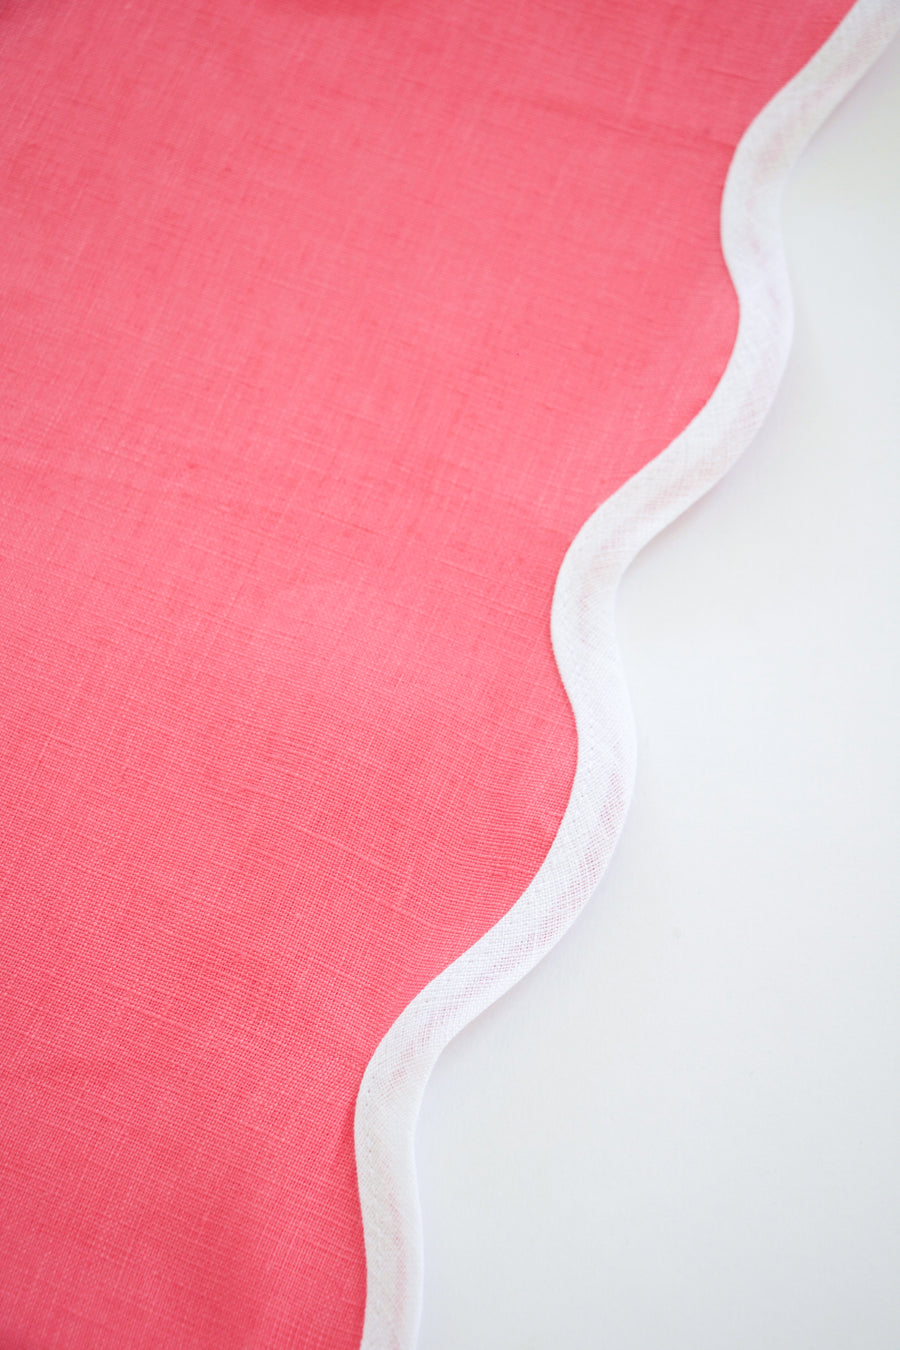 Linen Scalloped Square, Hibiscus Pink